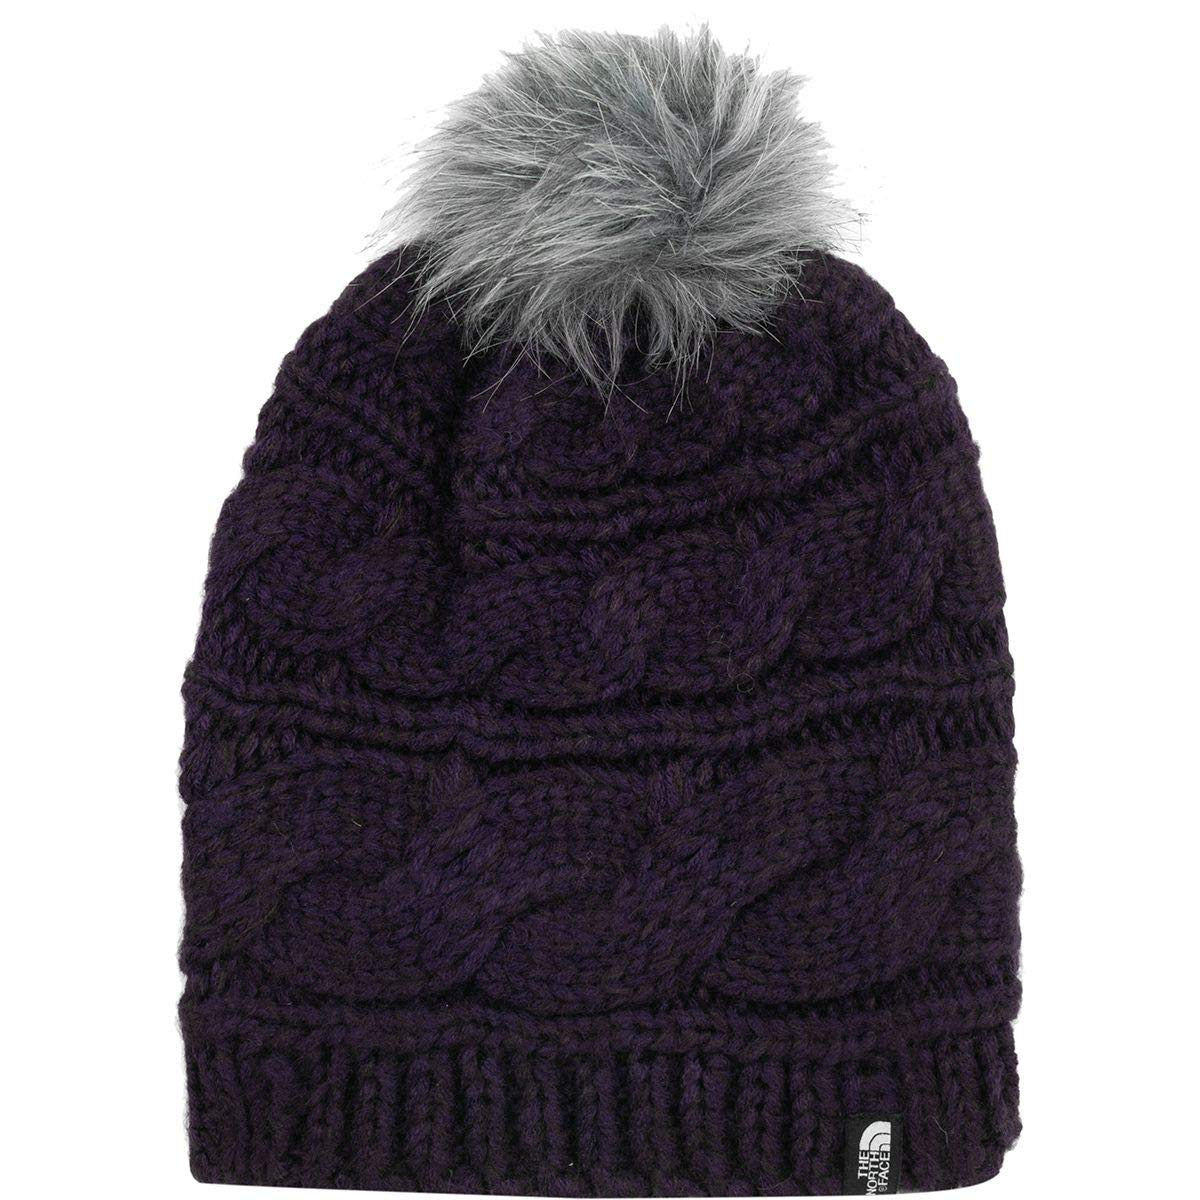 335a3731167 Amazon.com  The North Face Triple Cable Fur Pom - Galaxy Purple - OS   Clothing